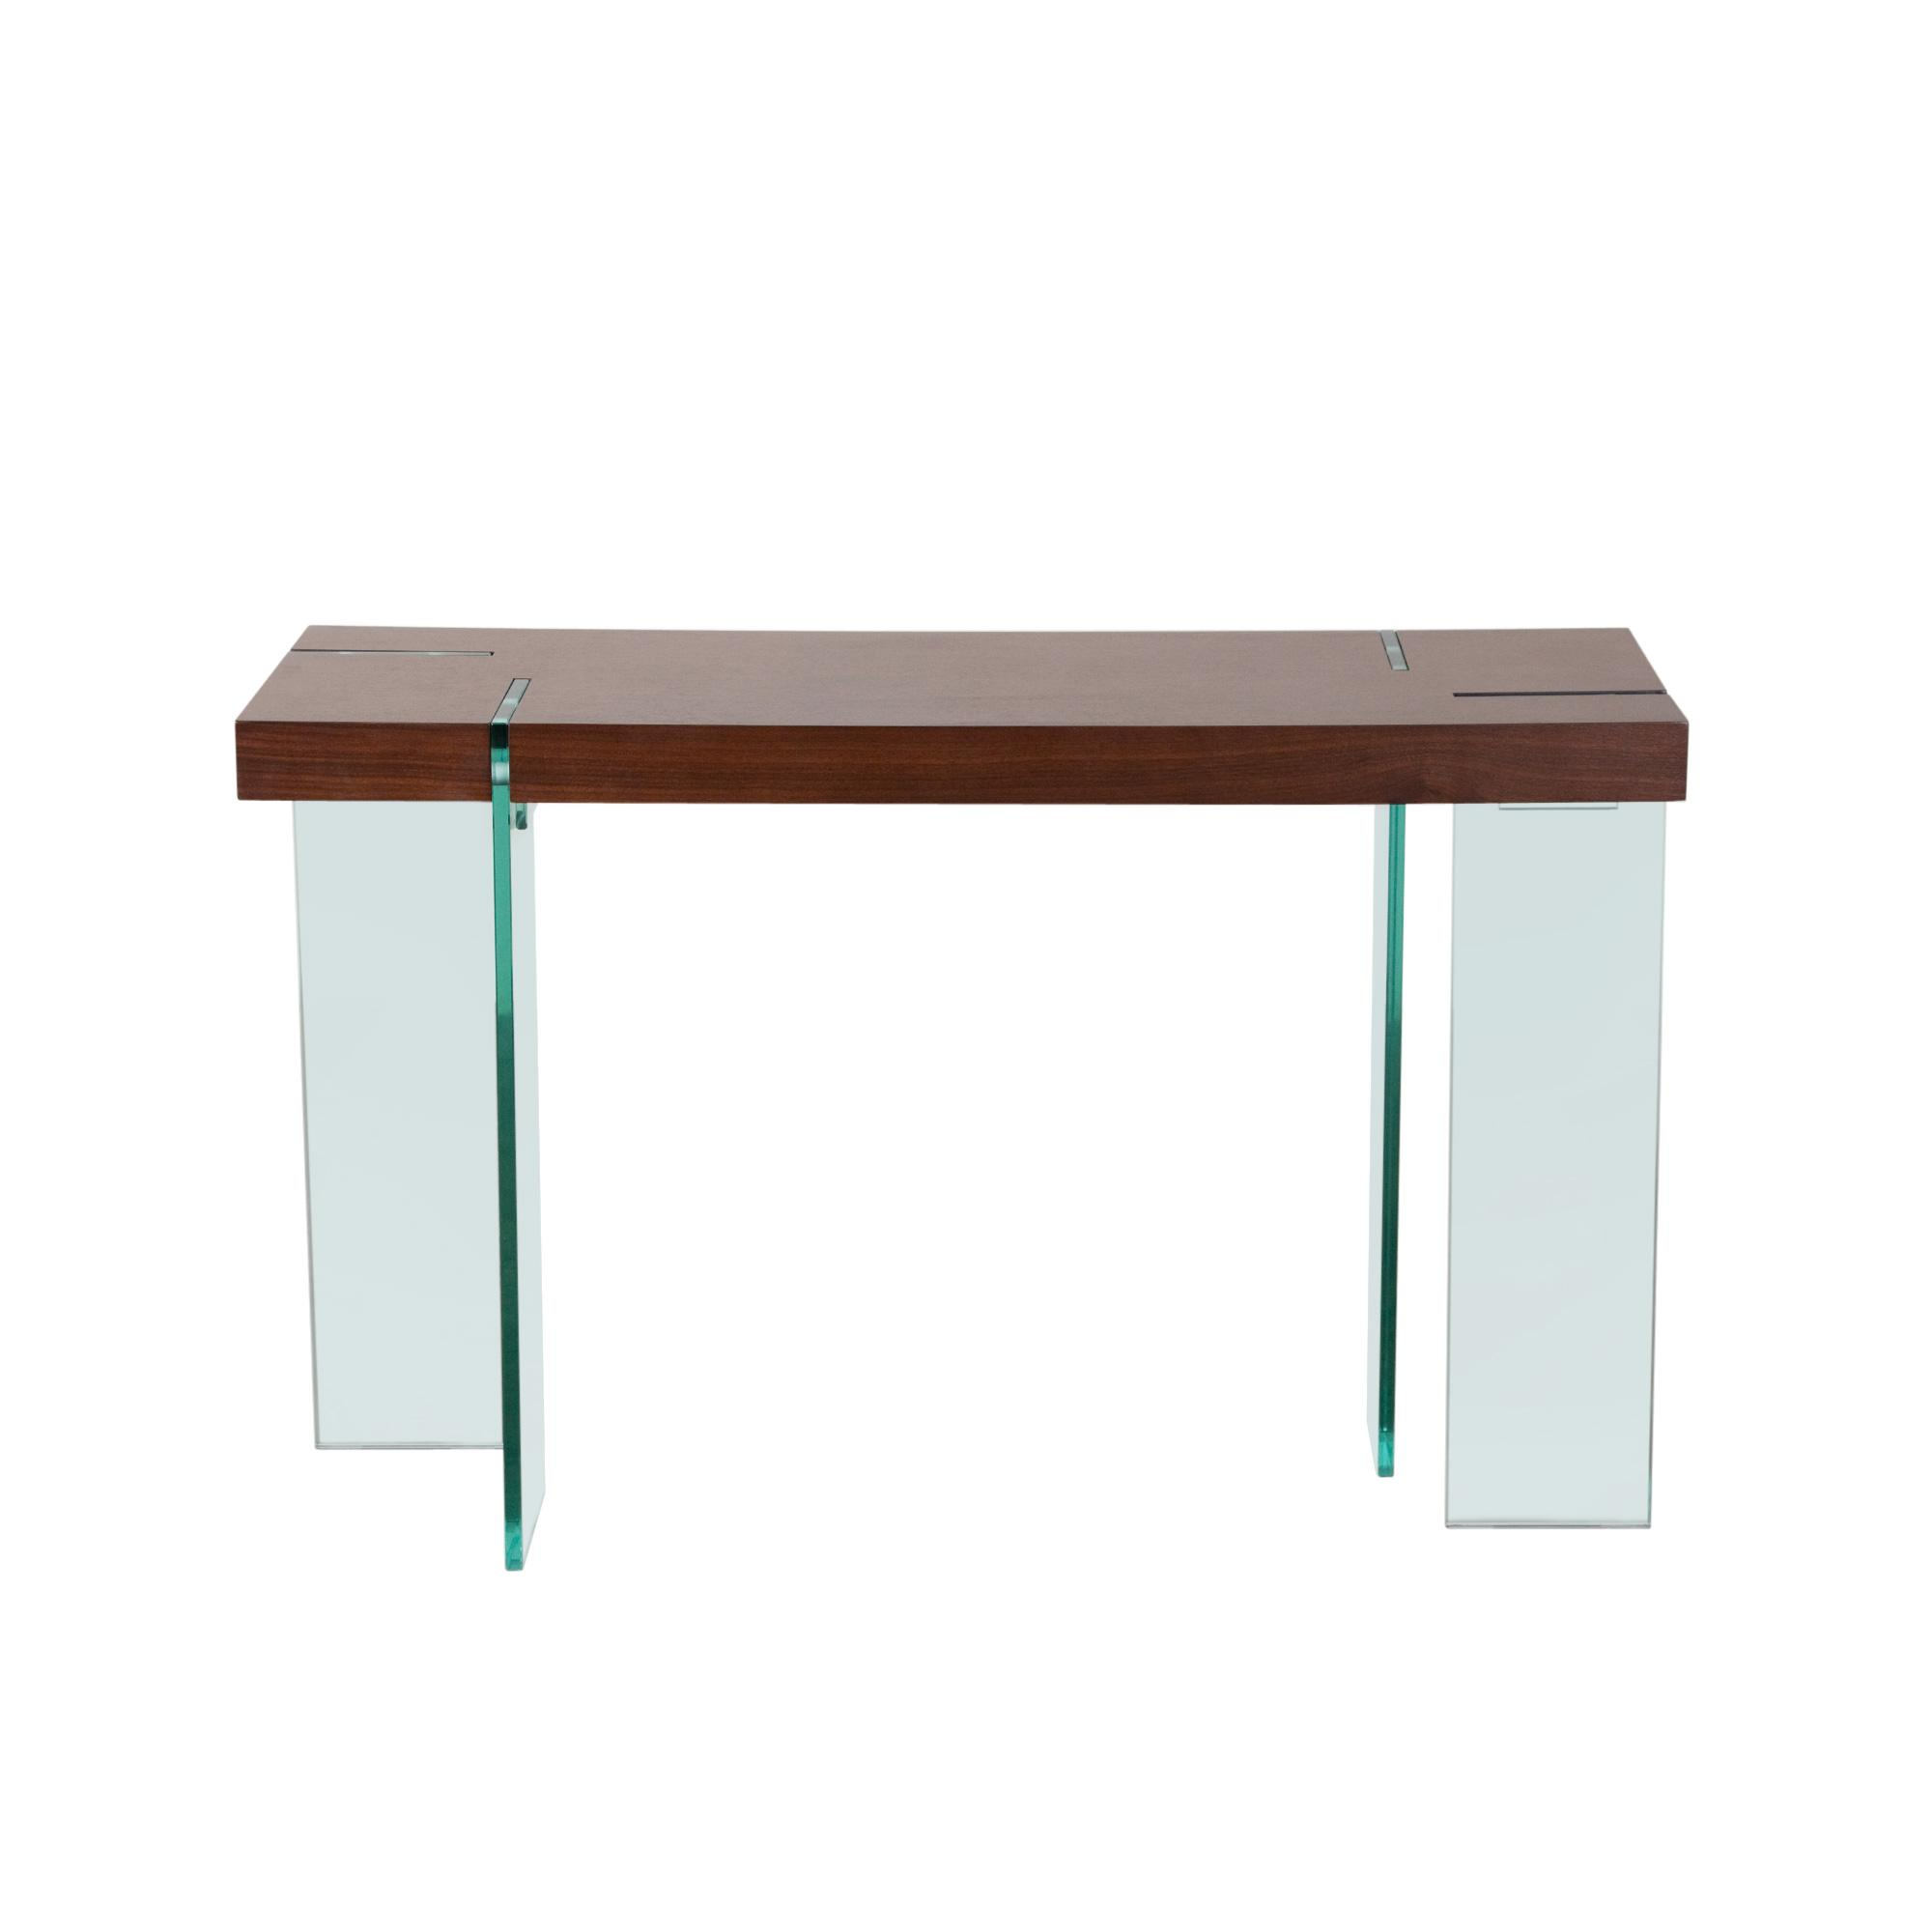 Diamond Sofa Occasional Tables & Entertainment Glass Leg Console Table - Item Number: CS776JV